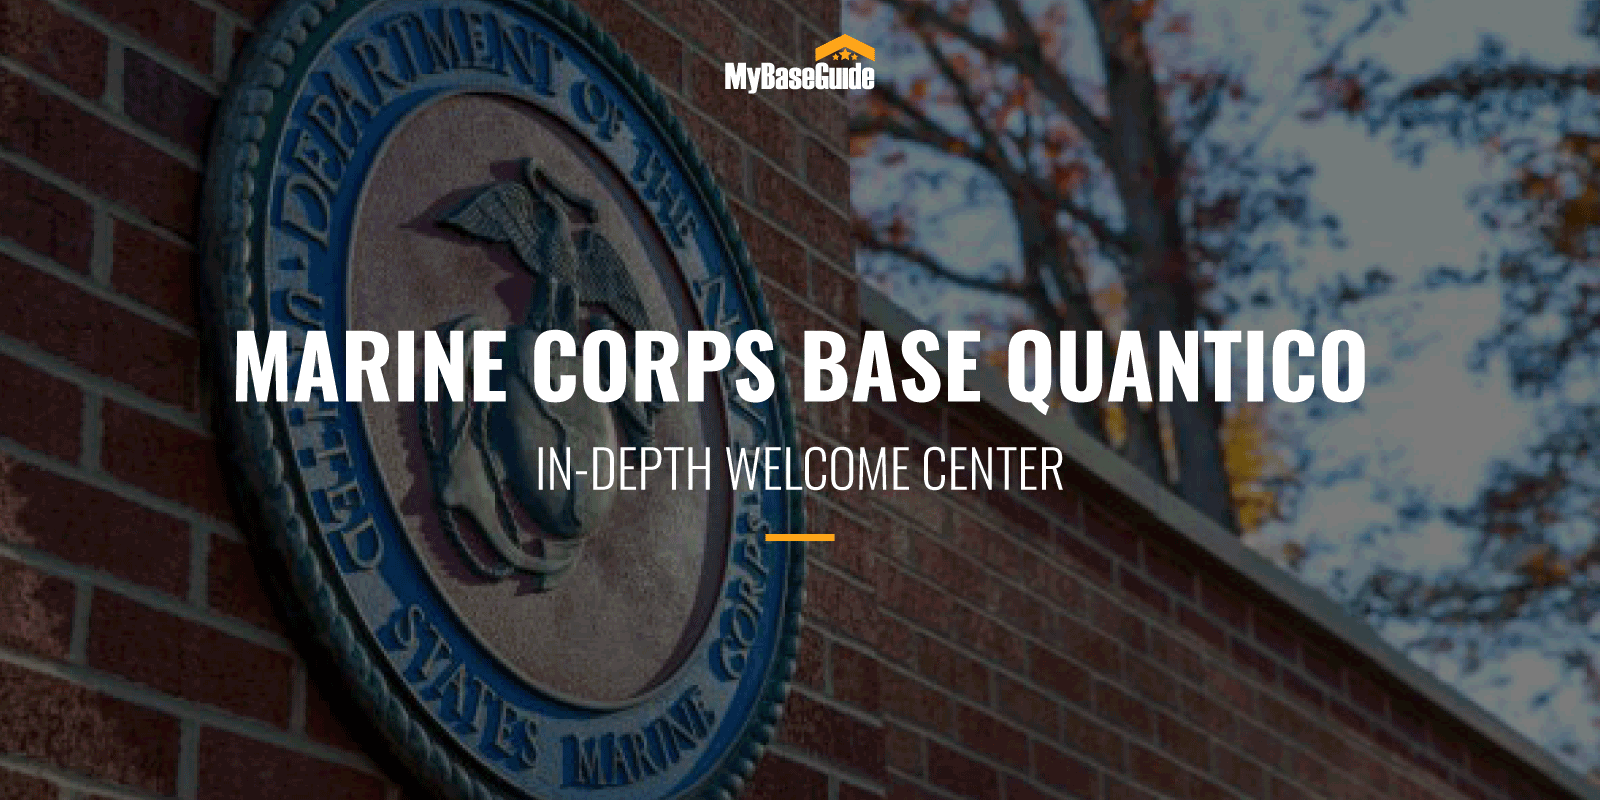 MCB Quantico: In-Depth Welcome Center